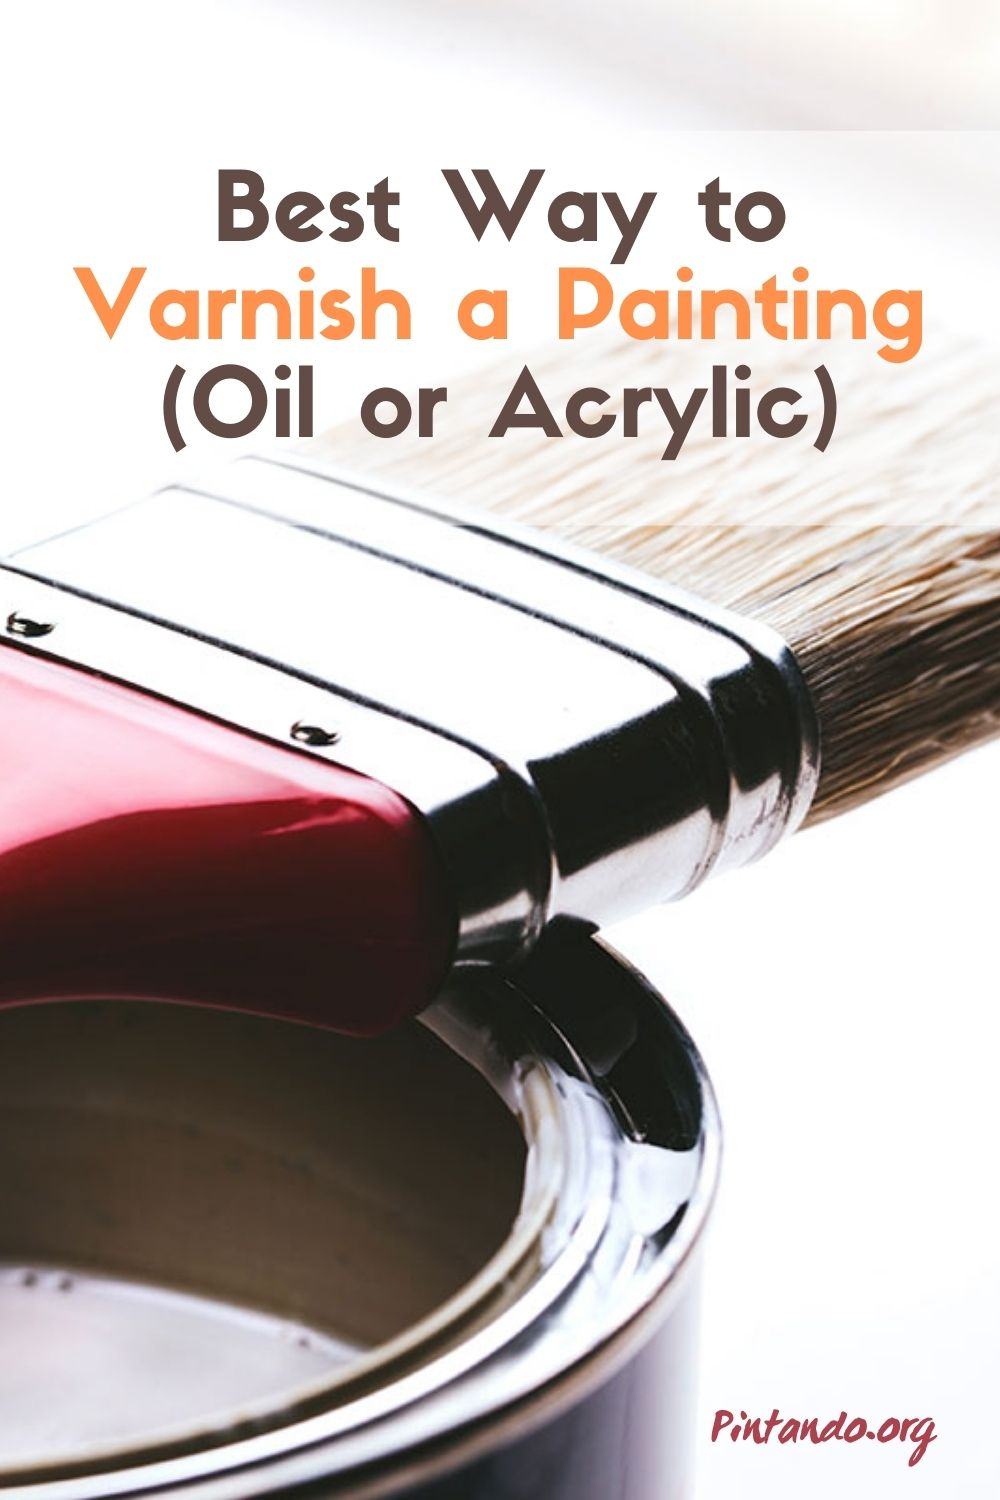 Best Way to Varnish a Painting (Oil or Acrylic)